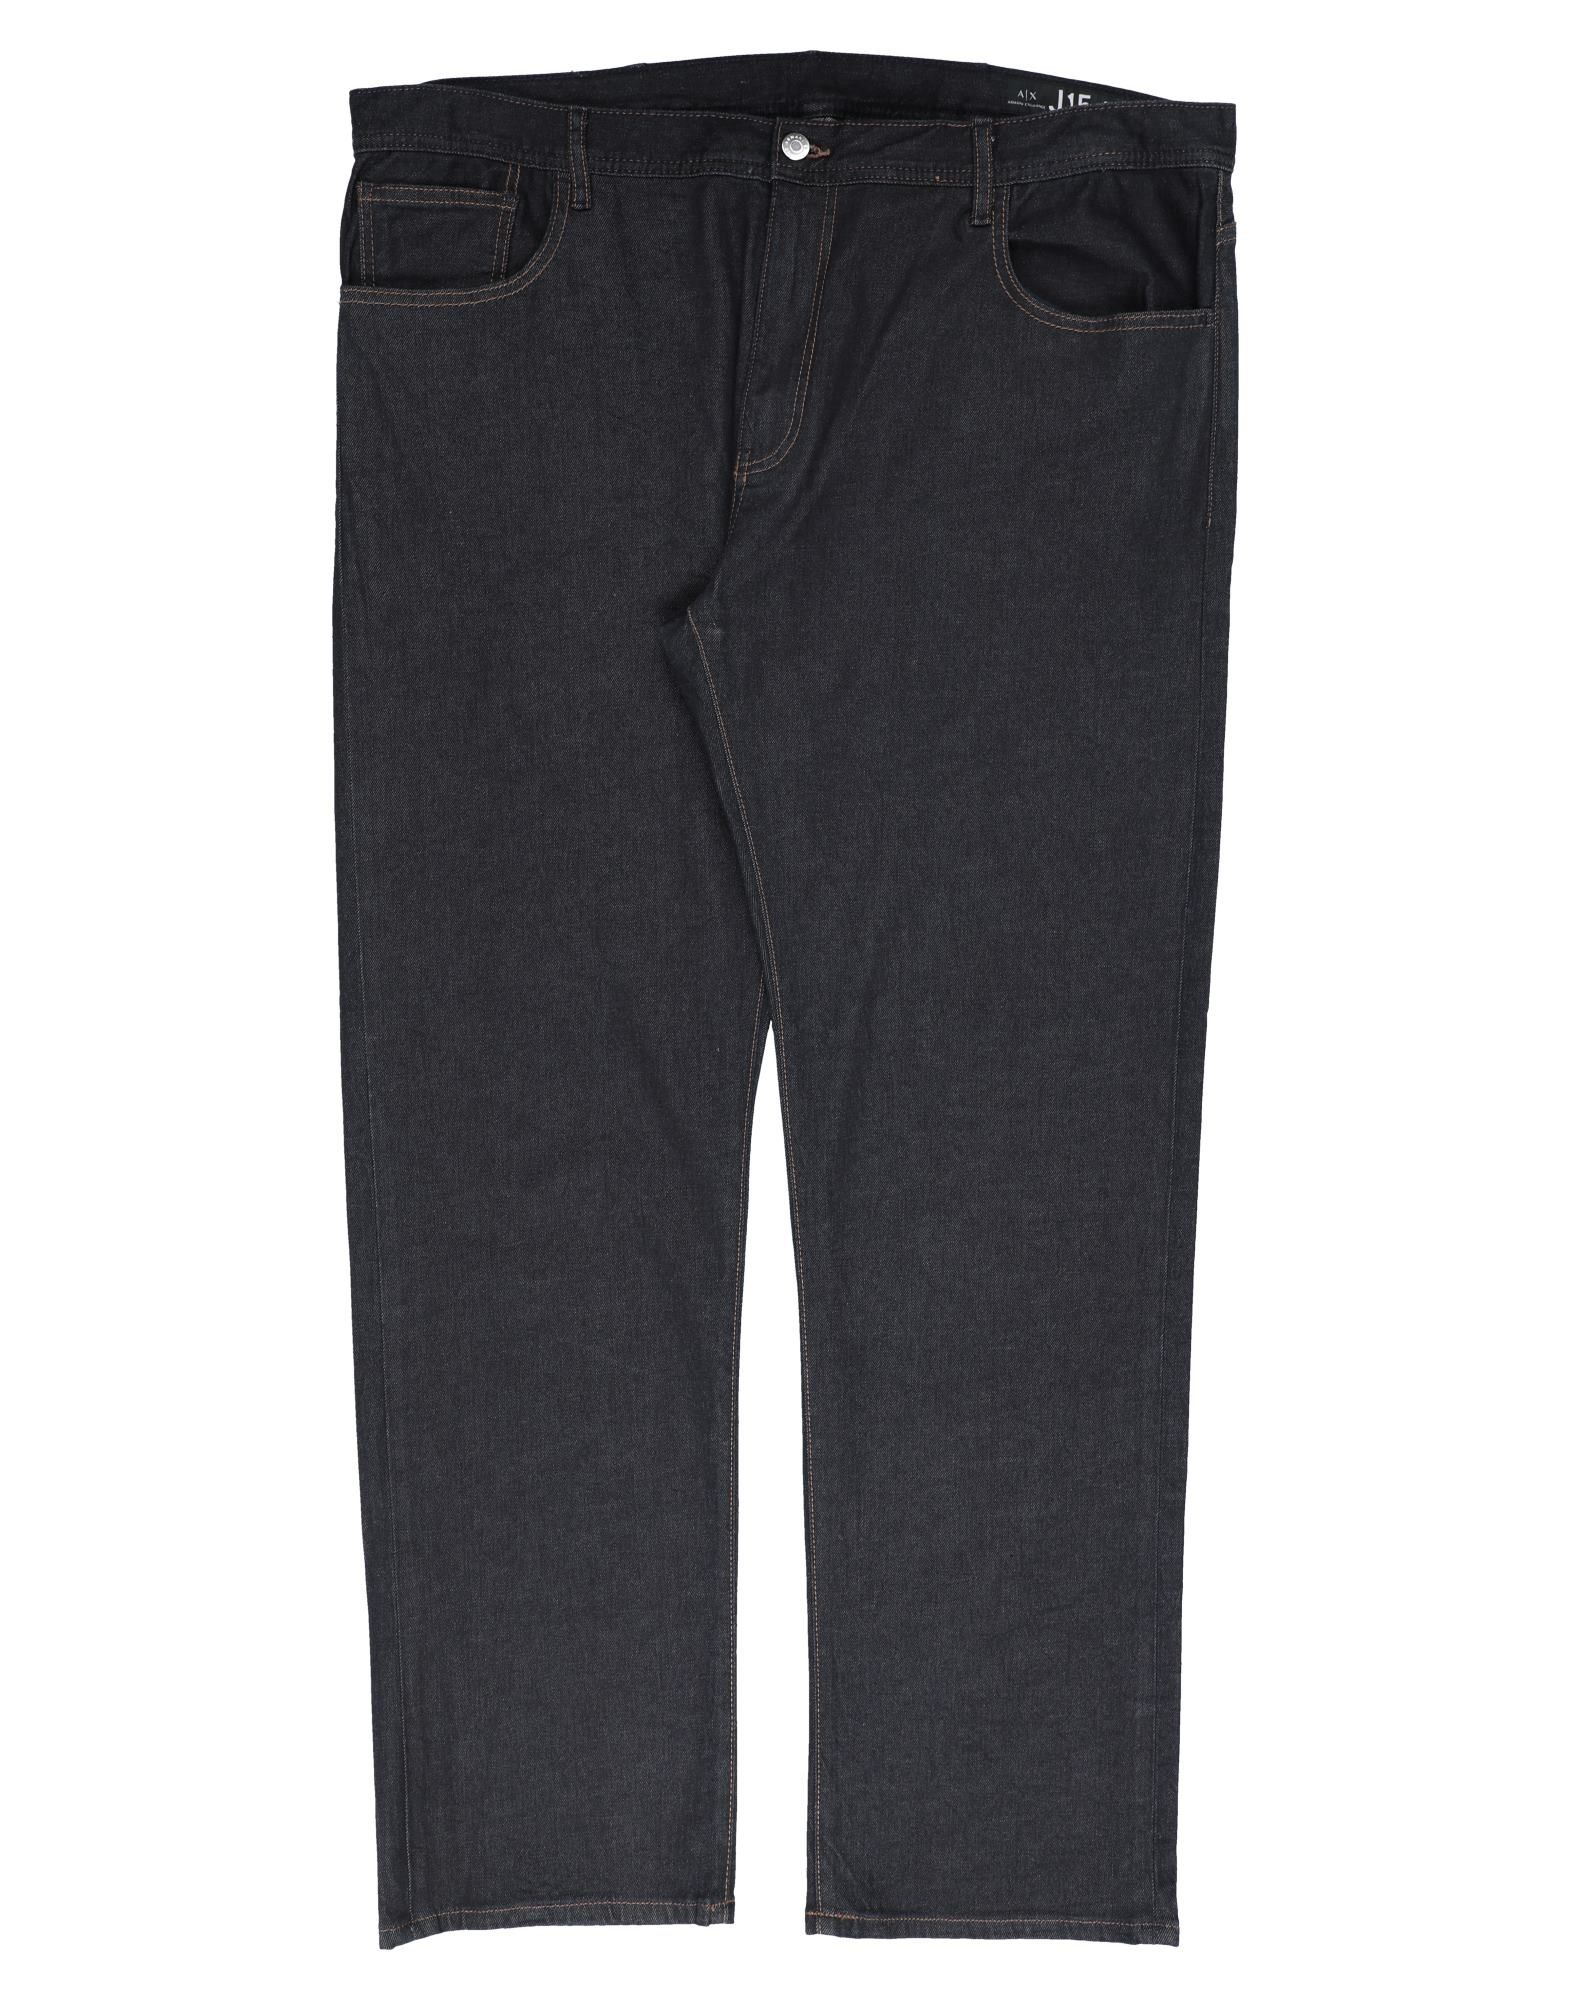 ARMANI EXCHANGE Denim pants - Item 42806575